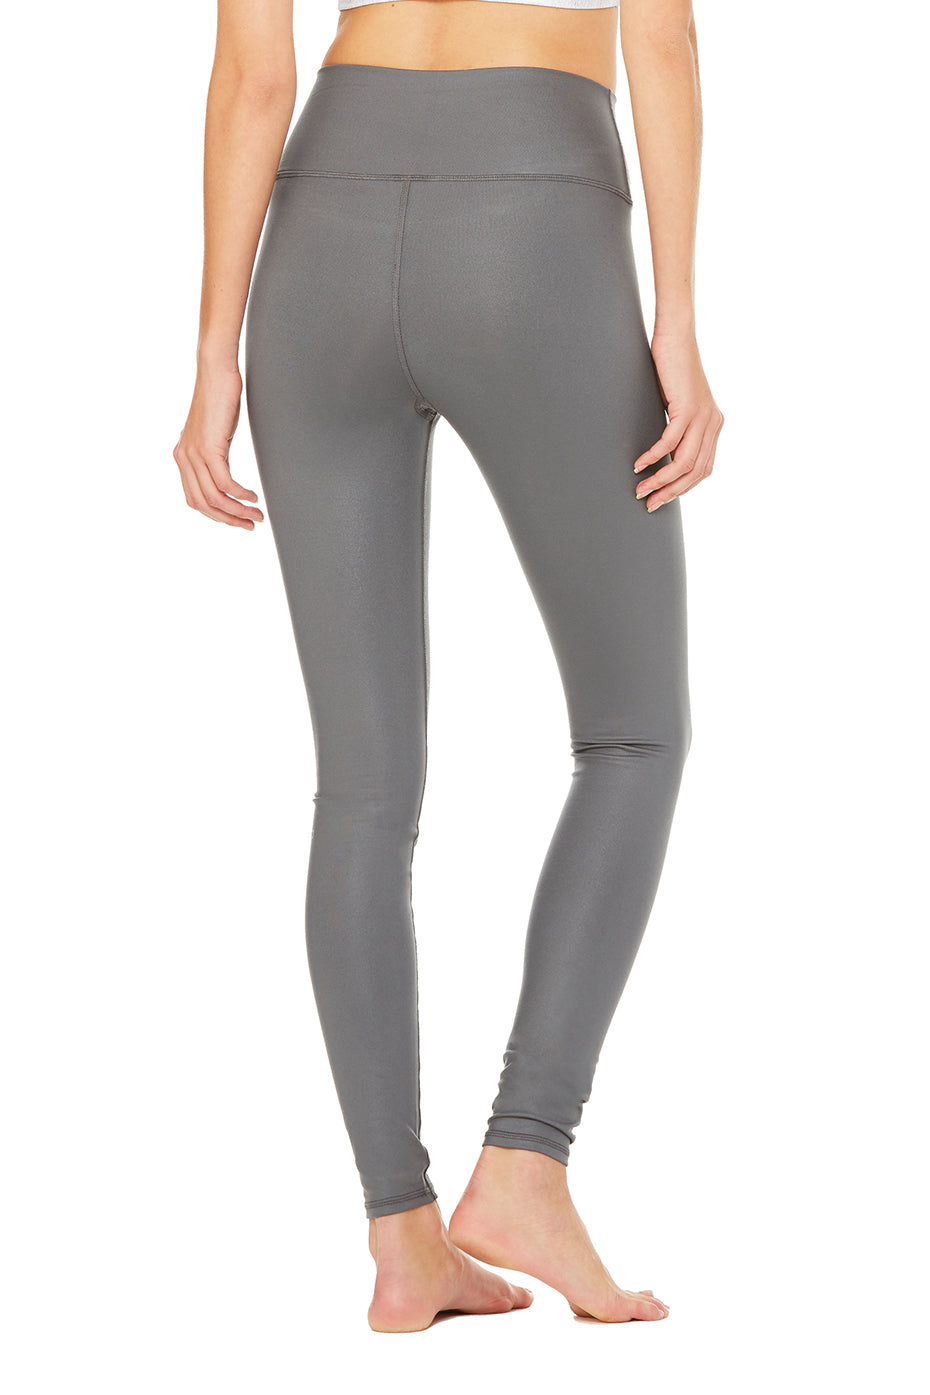 High-waisted leggings stay in place much better than normal leggings due to their higher cut around the abdomen. The high waist also provides you with a bit of support in the tummy area. Leggings with a high waist are available in numerous materials, colors, and patterns.